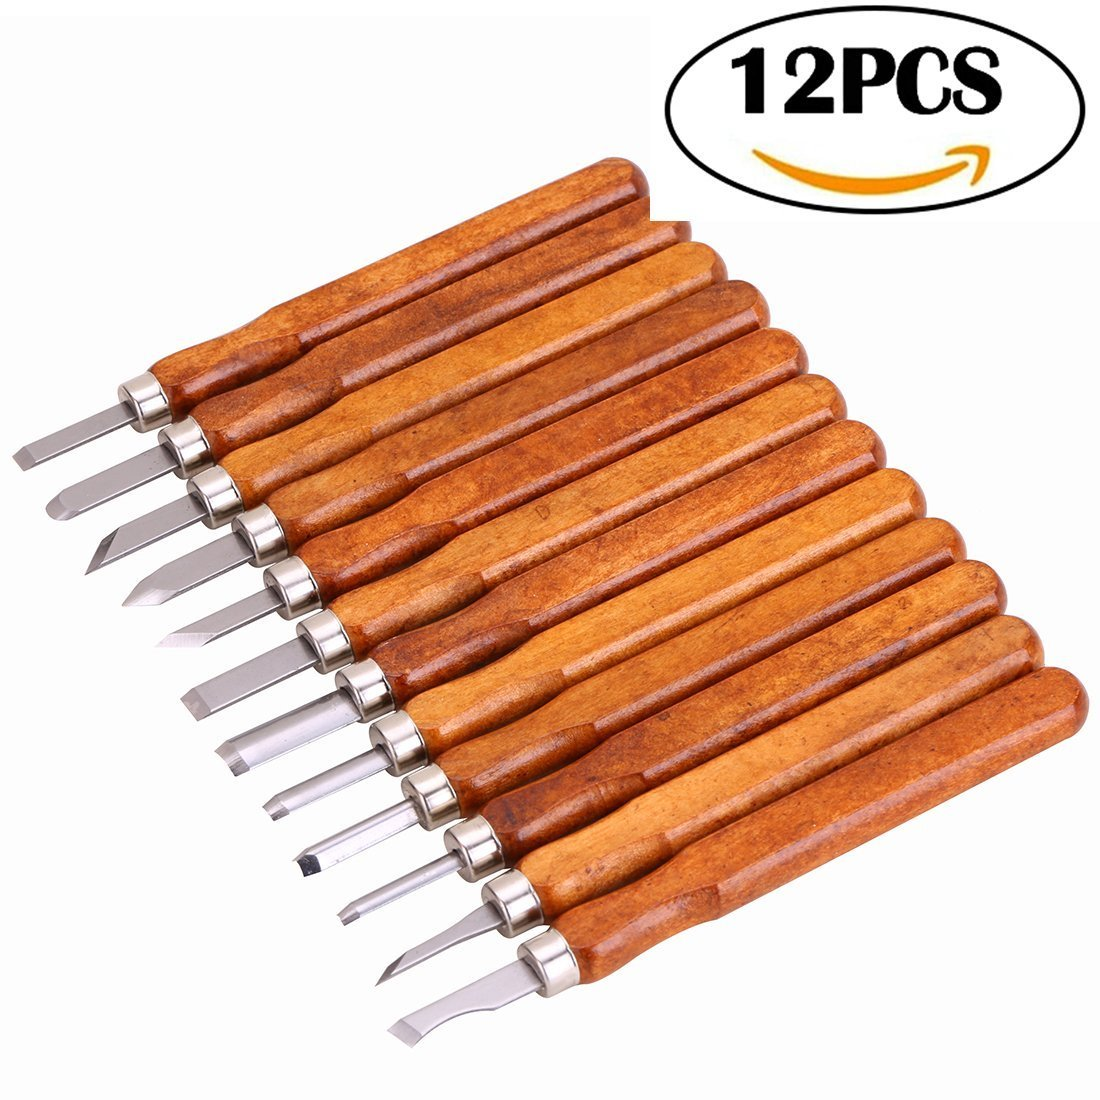 Wood Carving Tools Kit, including 12 pieces Professional Woodcut Chisels and Knives, For Wooden Crafts DIY Use XLY XLY-089